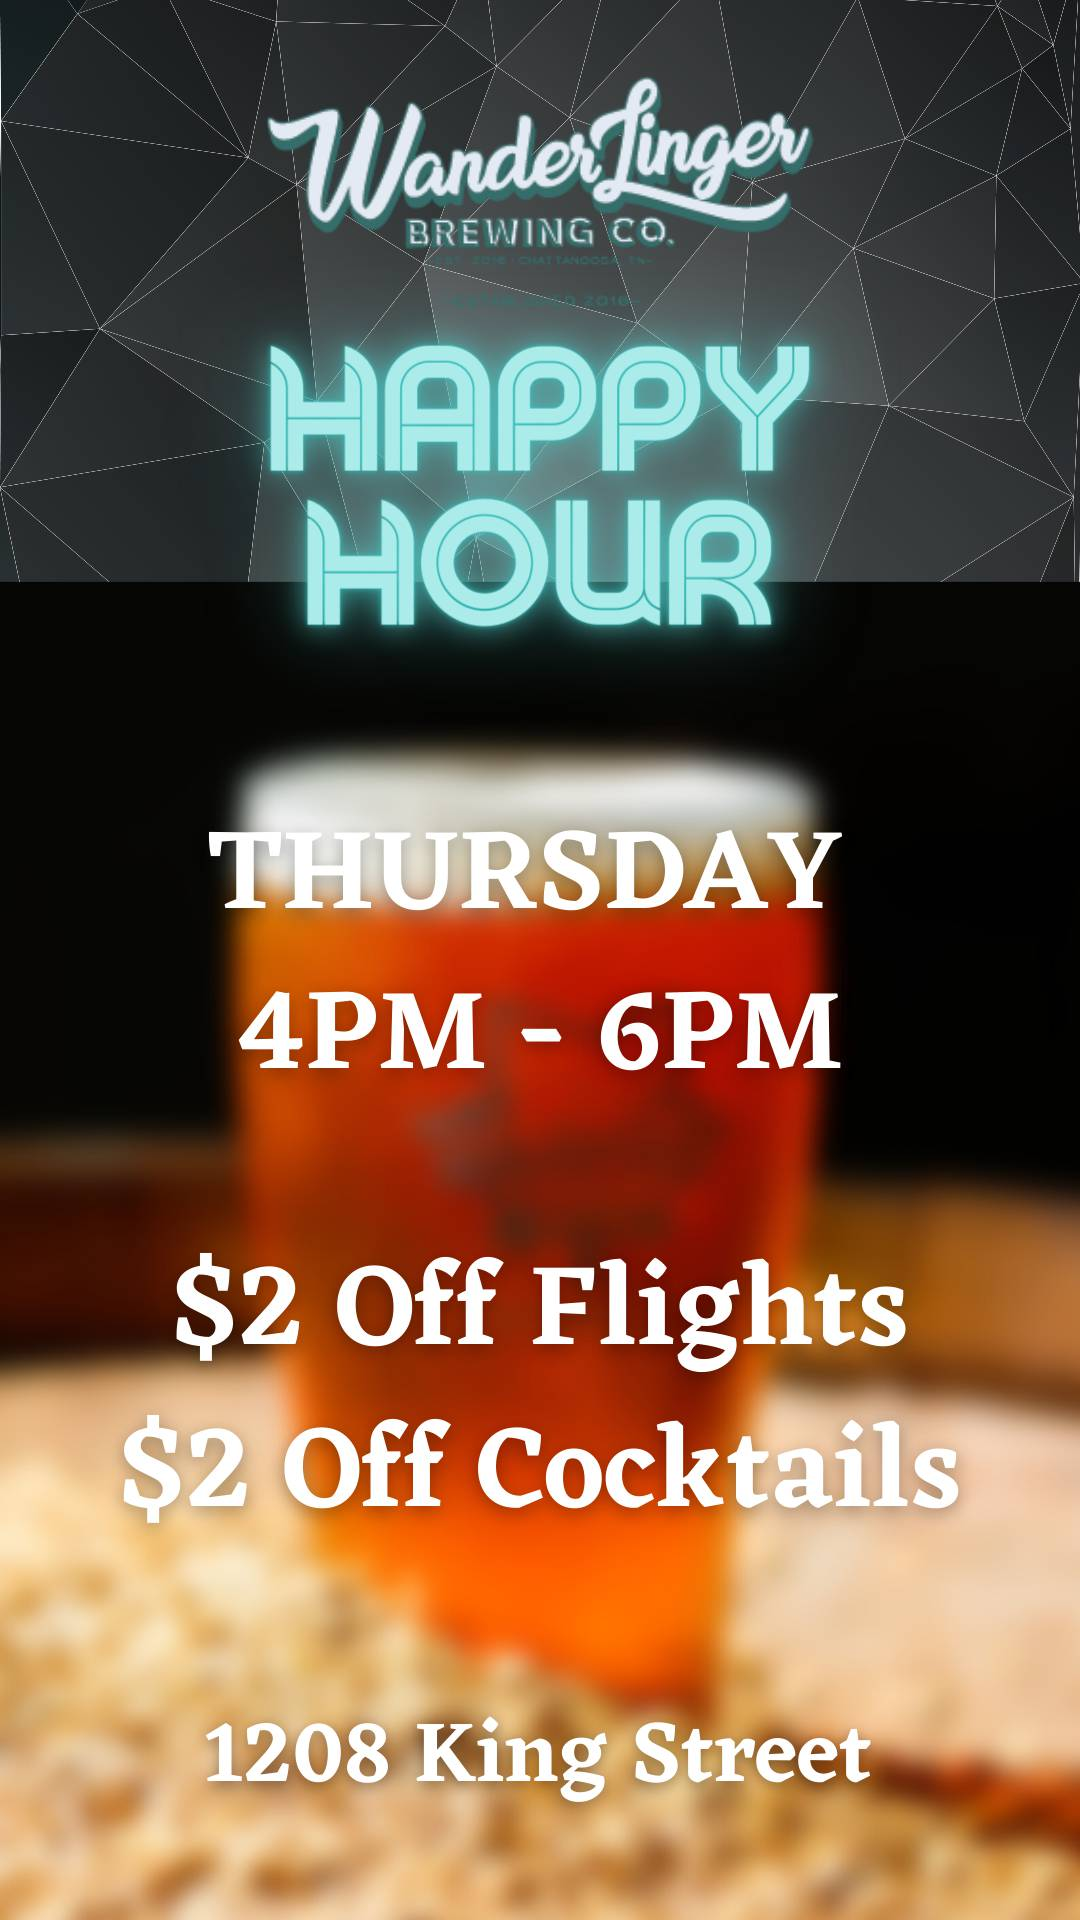 Thursday Happy Hour! $2 Off Flights / $2 Off Cocktails